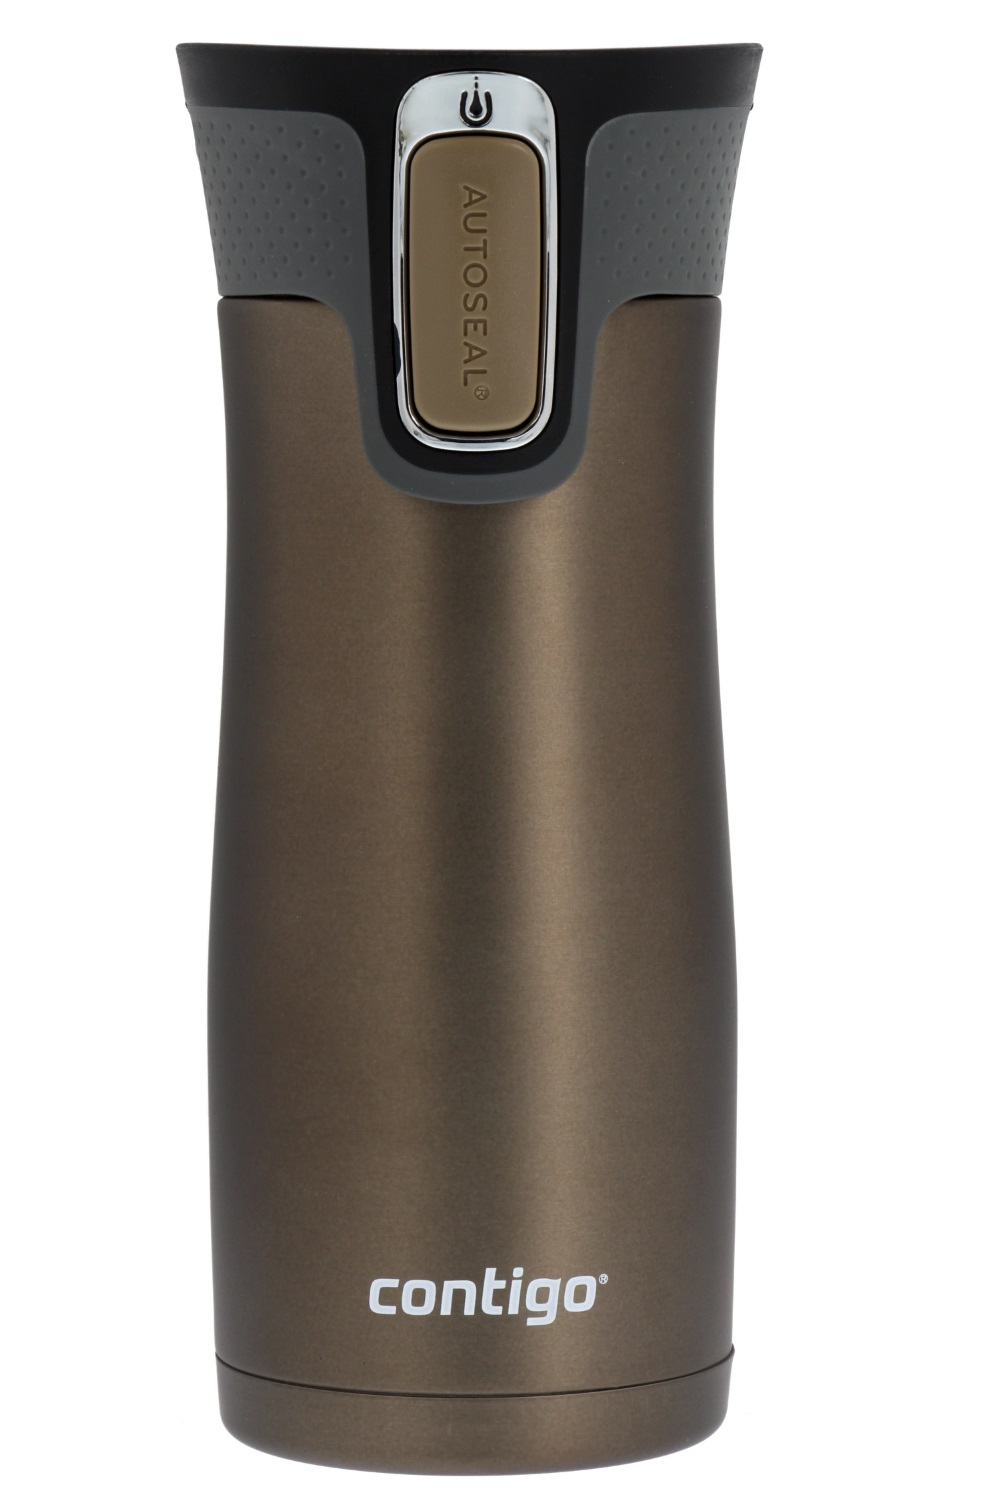 16oz Latte Contigo Autoseal West Loop 2.0 Insulated Stainless Steel Travel Mug